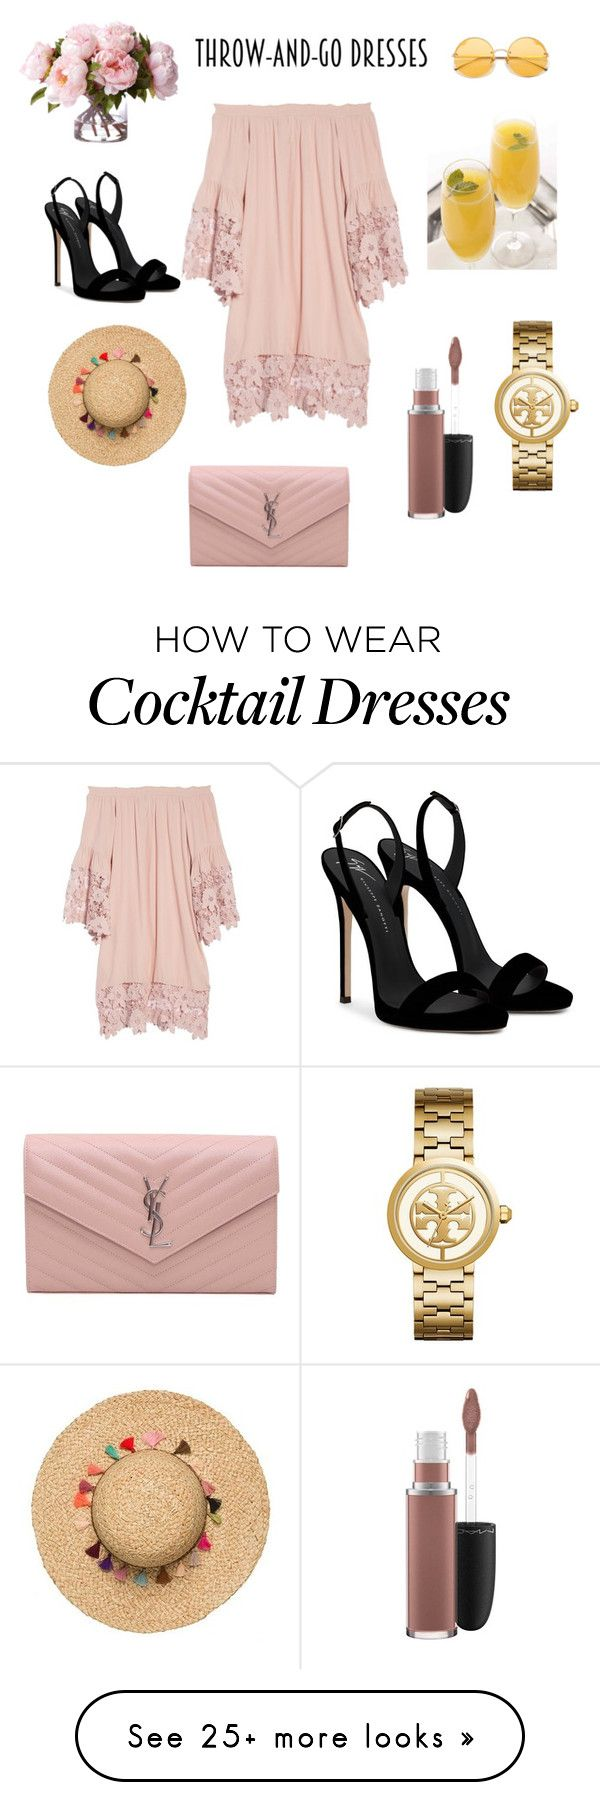 """Nude vibes"" by irena-dimova on Polyvore featuring Muche Et Muchette, Giuseppe Zanotti, Yves Saint Laurent, Tory Burch and MAC Cosmetics"